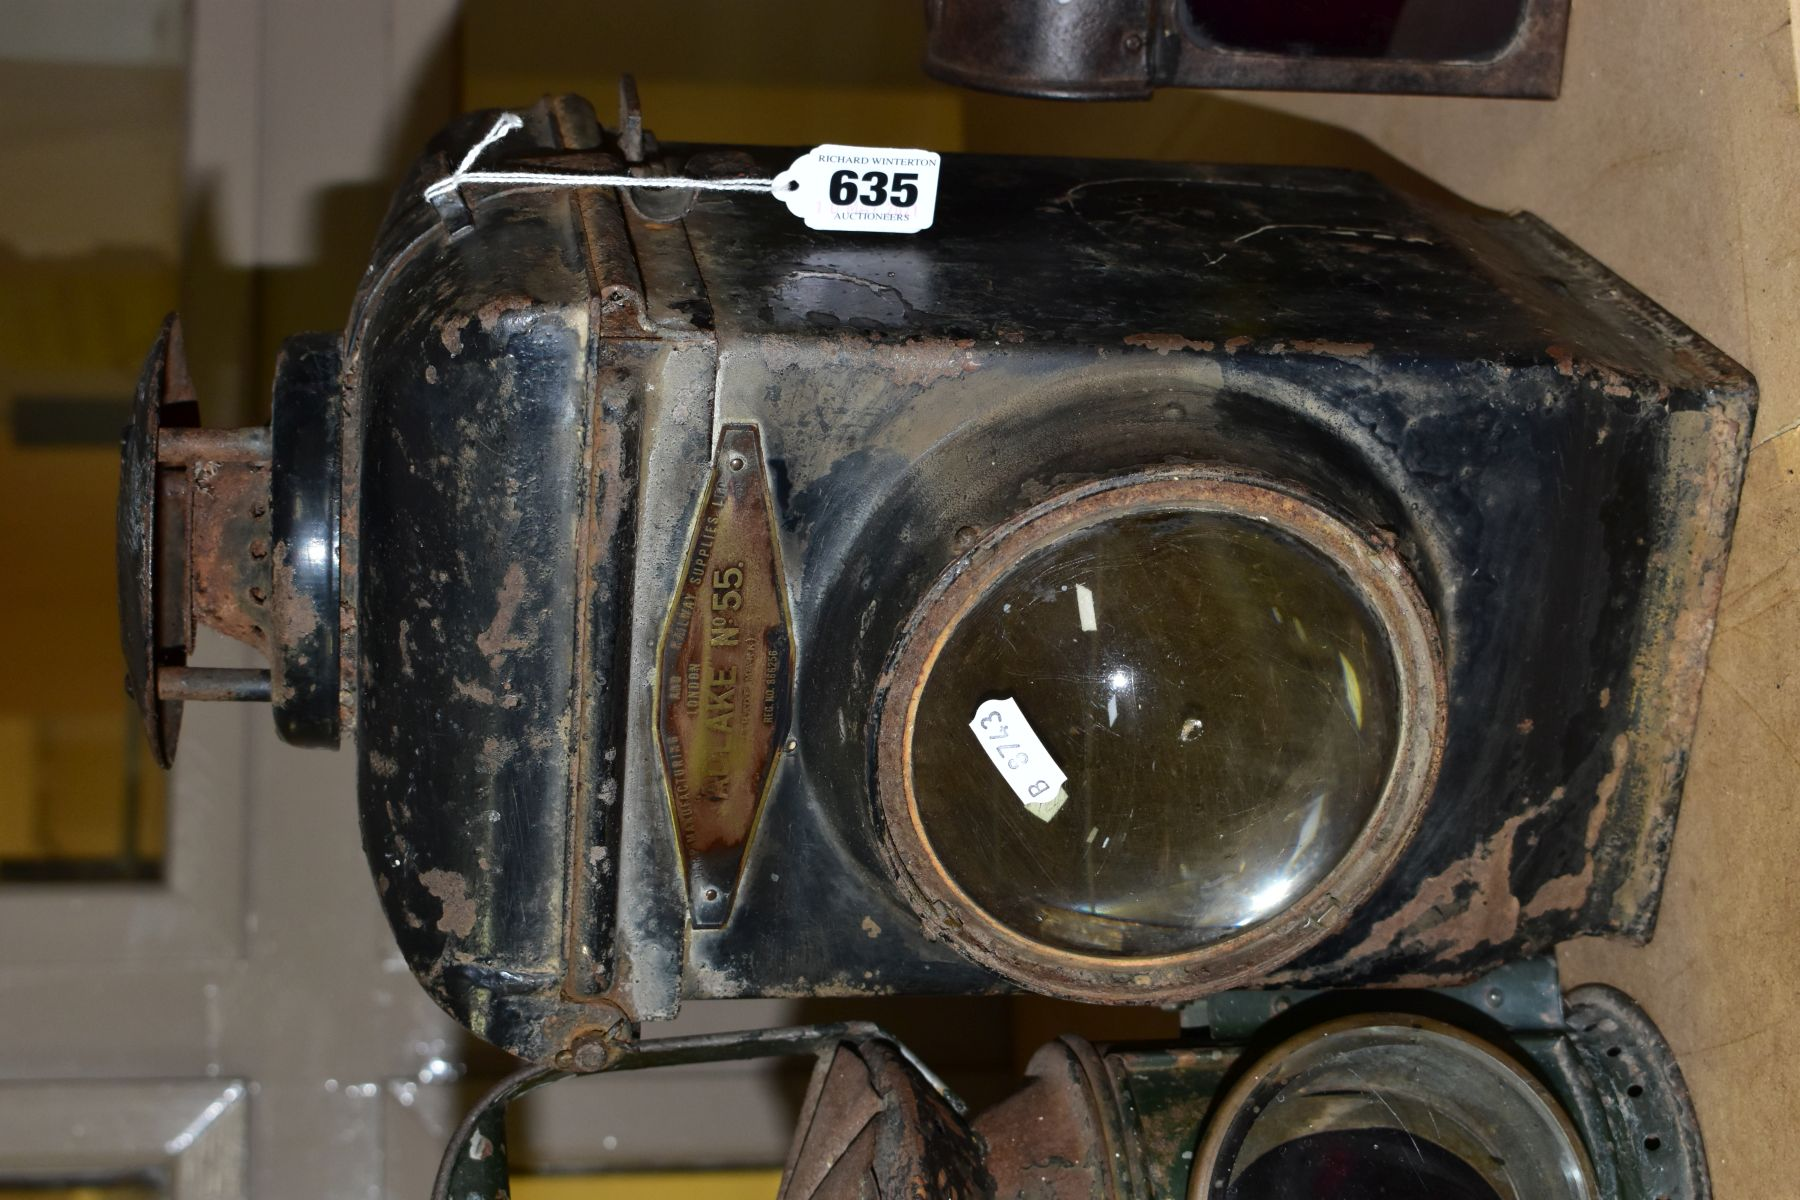 AN ADLAKE NO. 55 RAILWAY LAMP, black painted body with clear bulls eye lens, complete with lift - Image 3 of 8